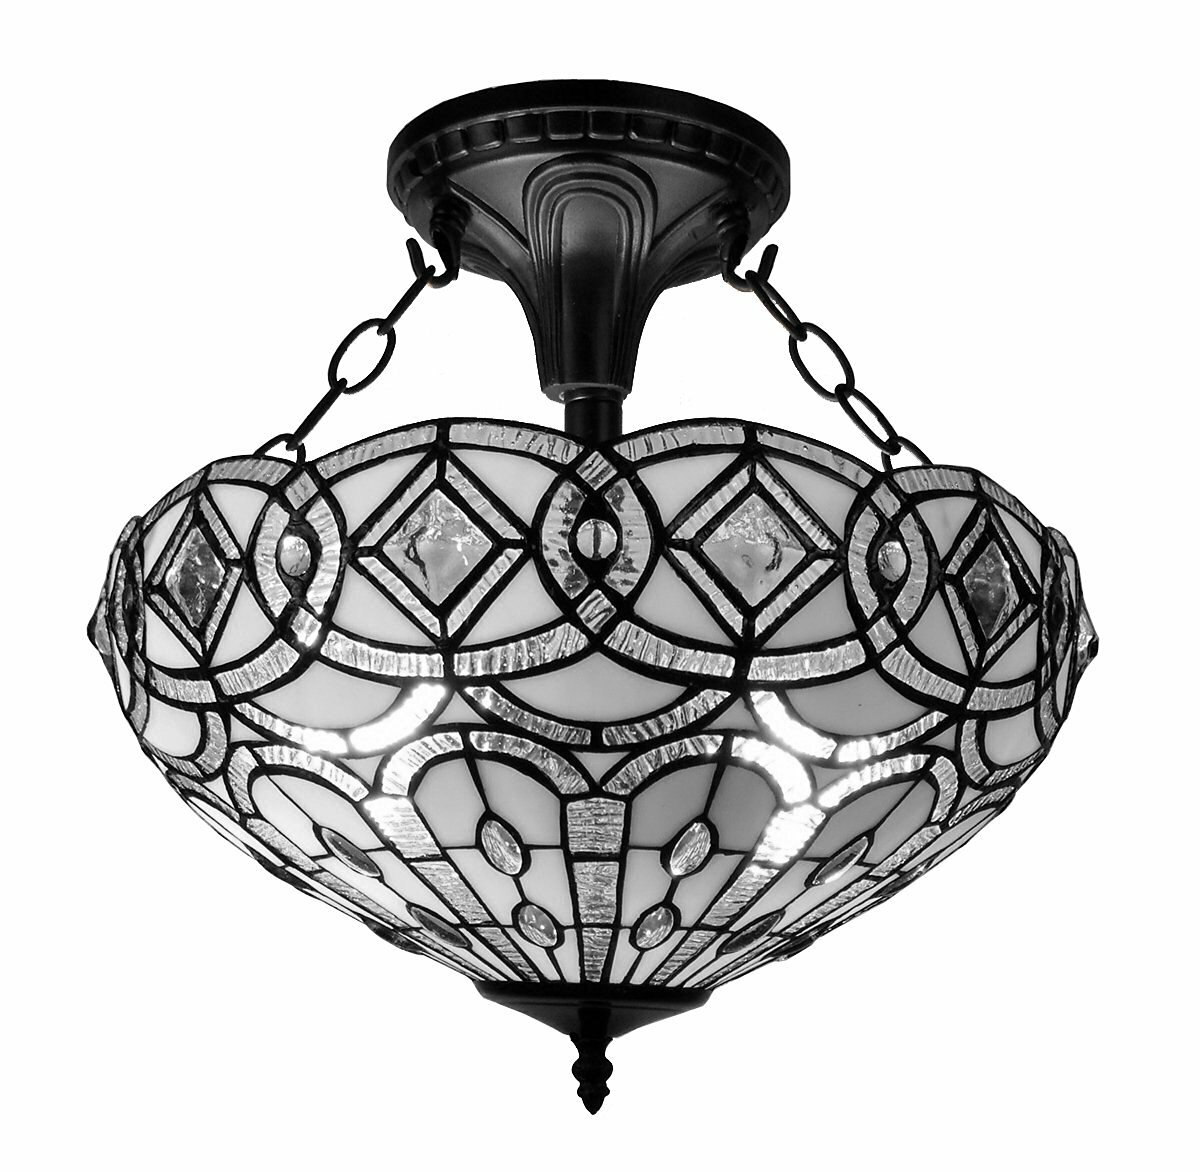 9a1e4859c588 AmoraLighting Tiffany 2-Light Semi Flush Mount   Reviews